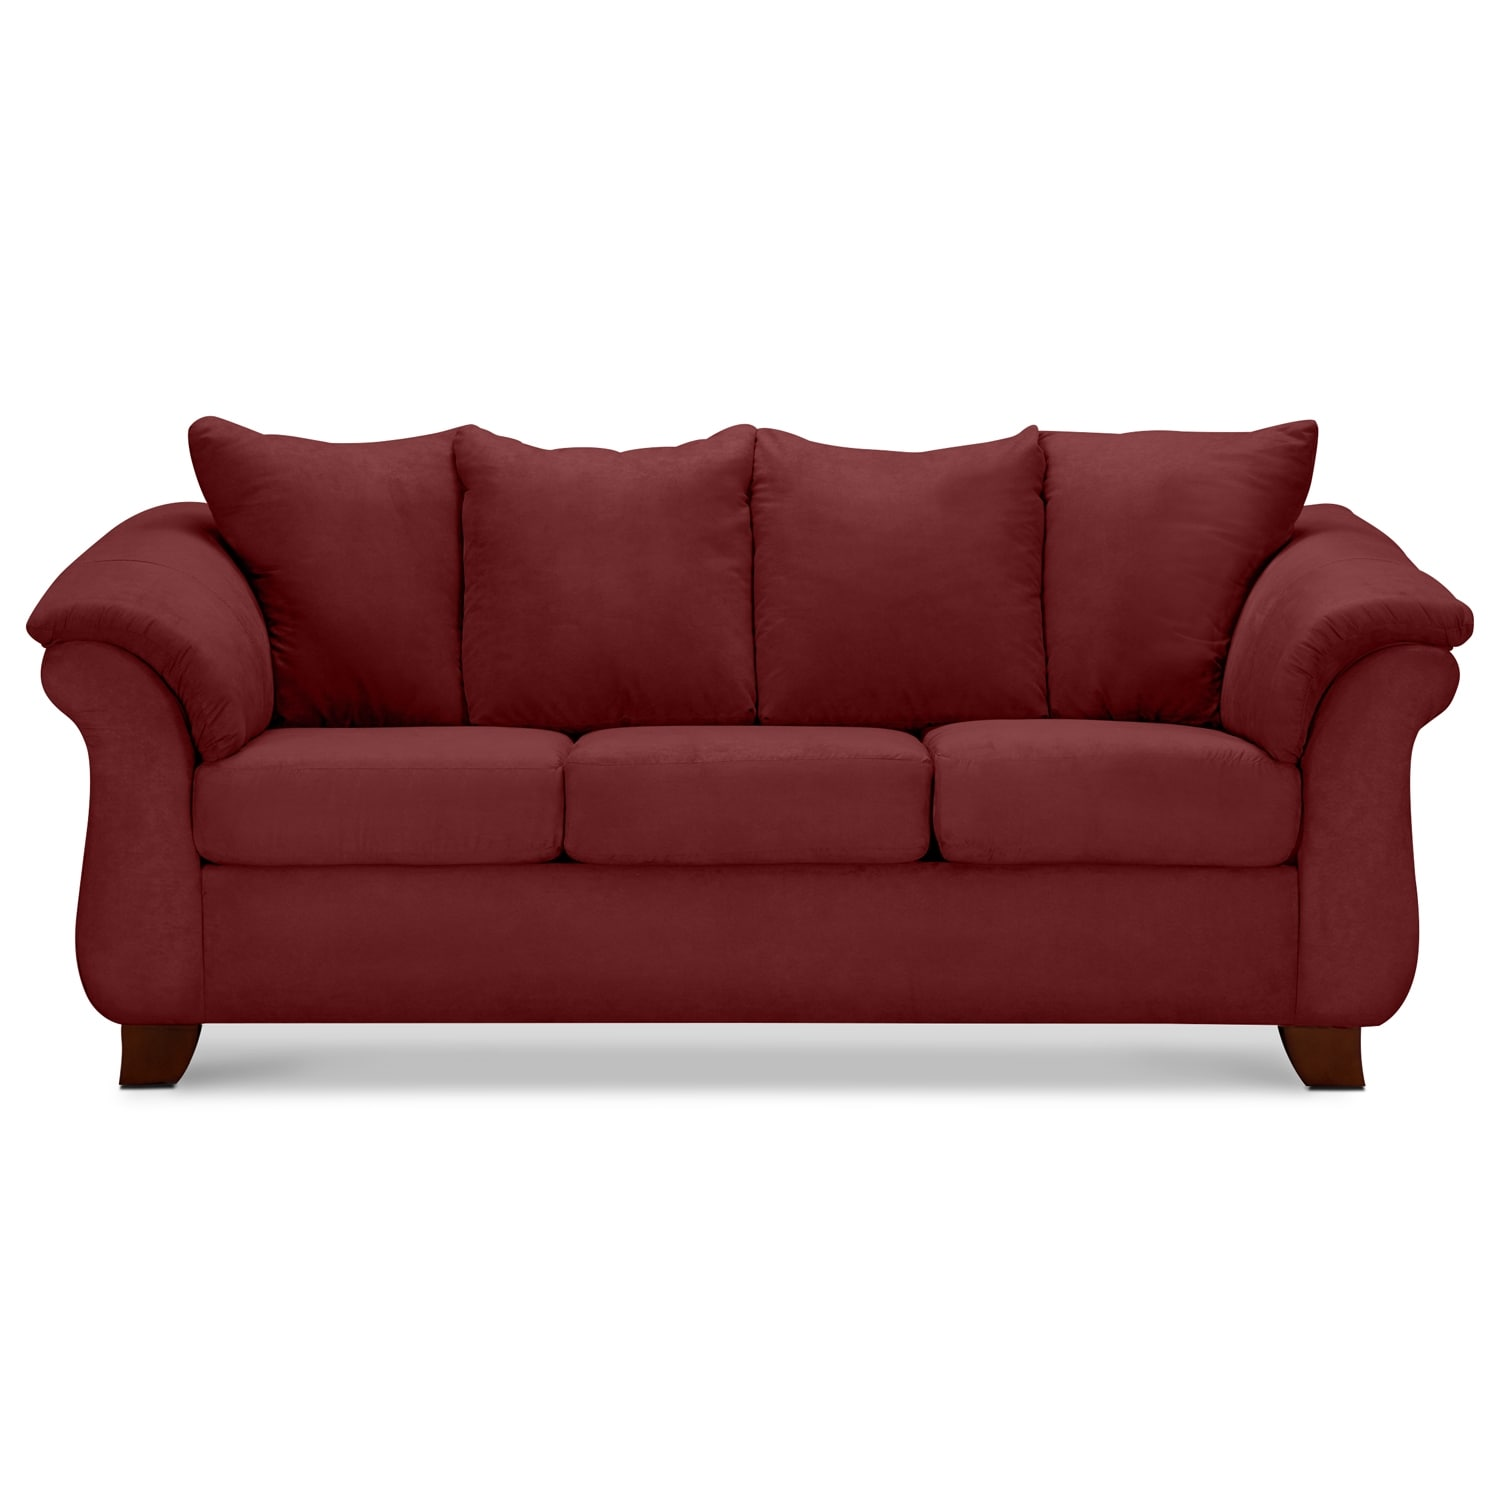 Adrian sofa red value city furniture for Red sectional sofa value city